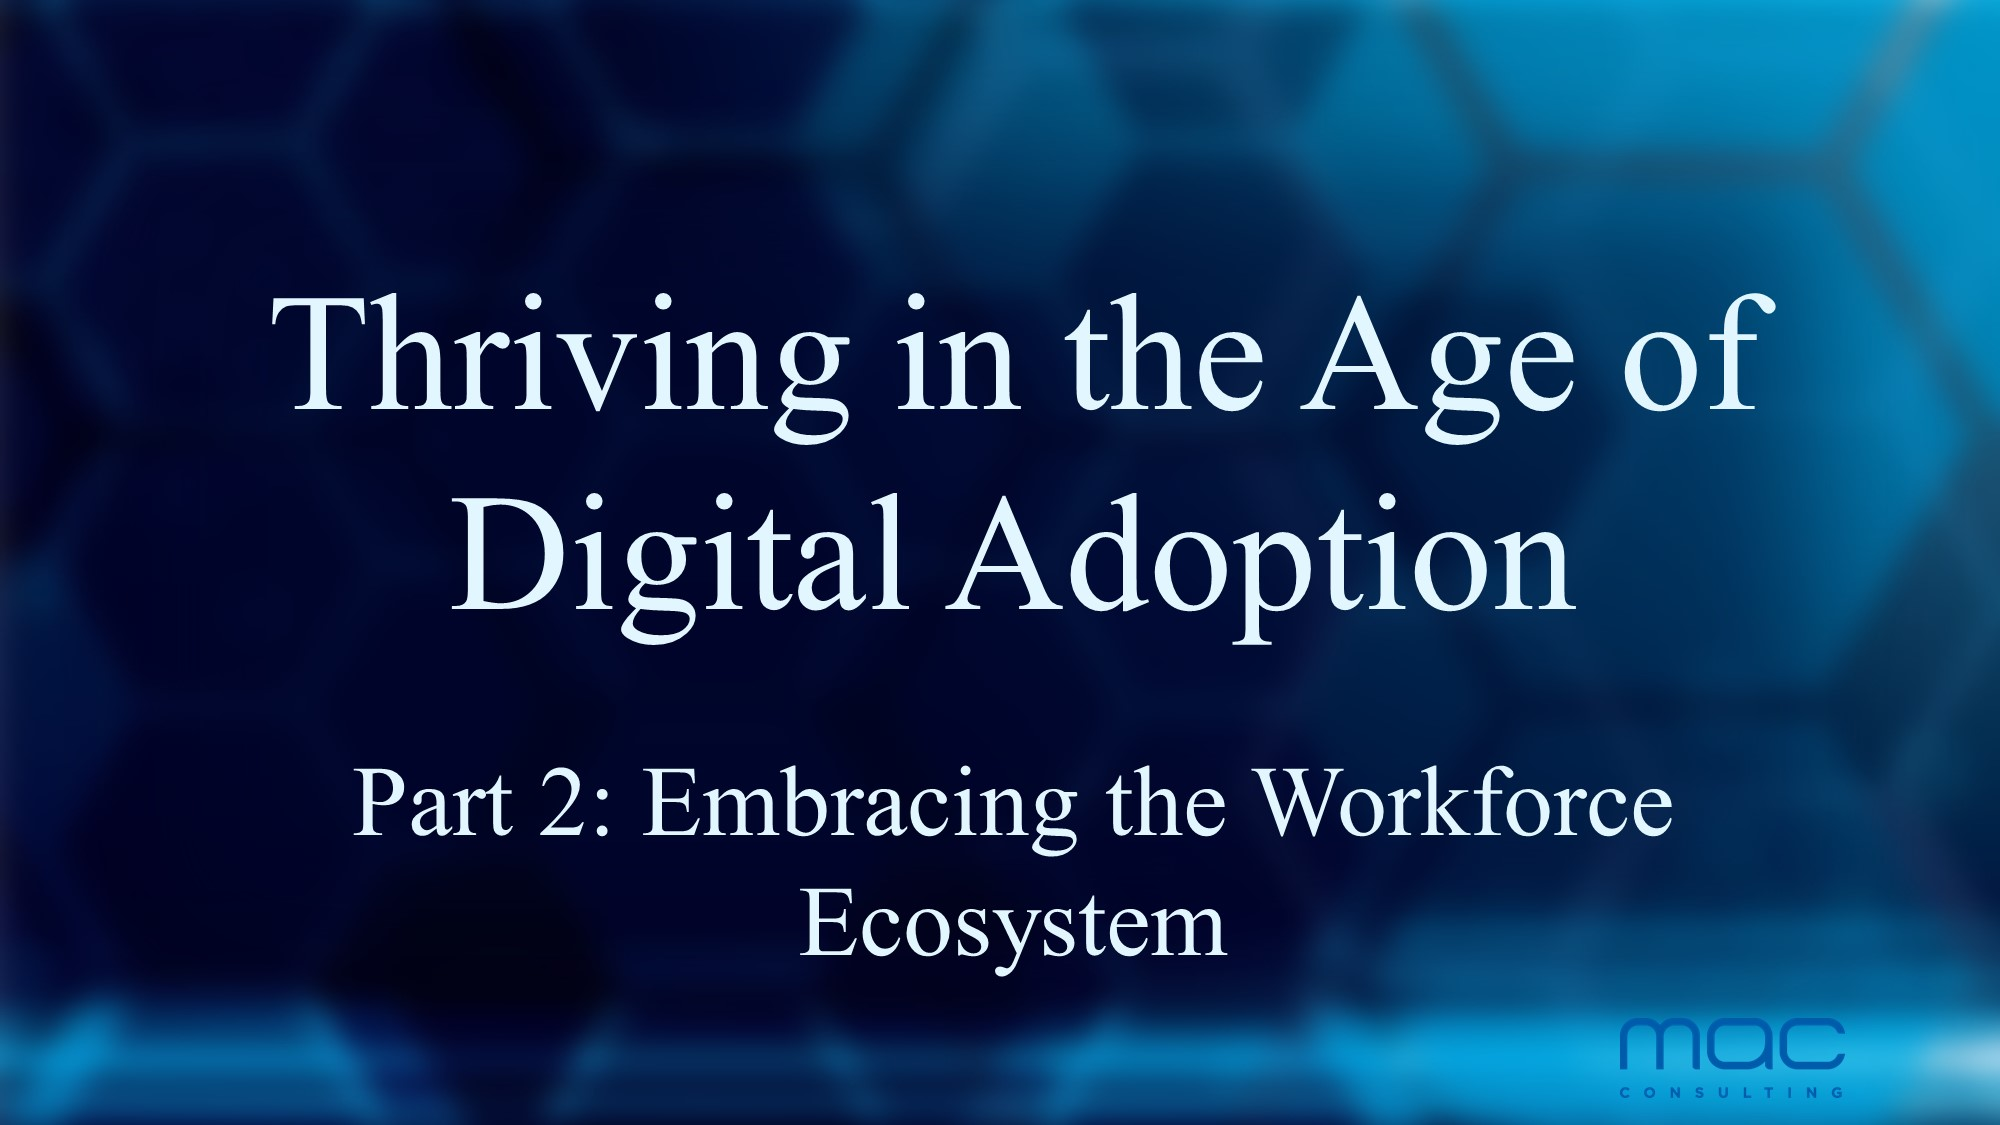 Thriving in the Age of Digital Adoption: Embracing the Workforce Ecosystem (part 2)